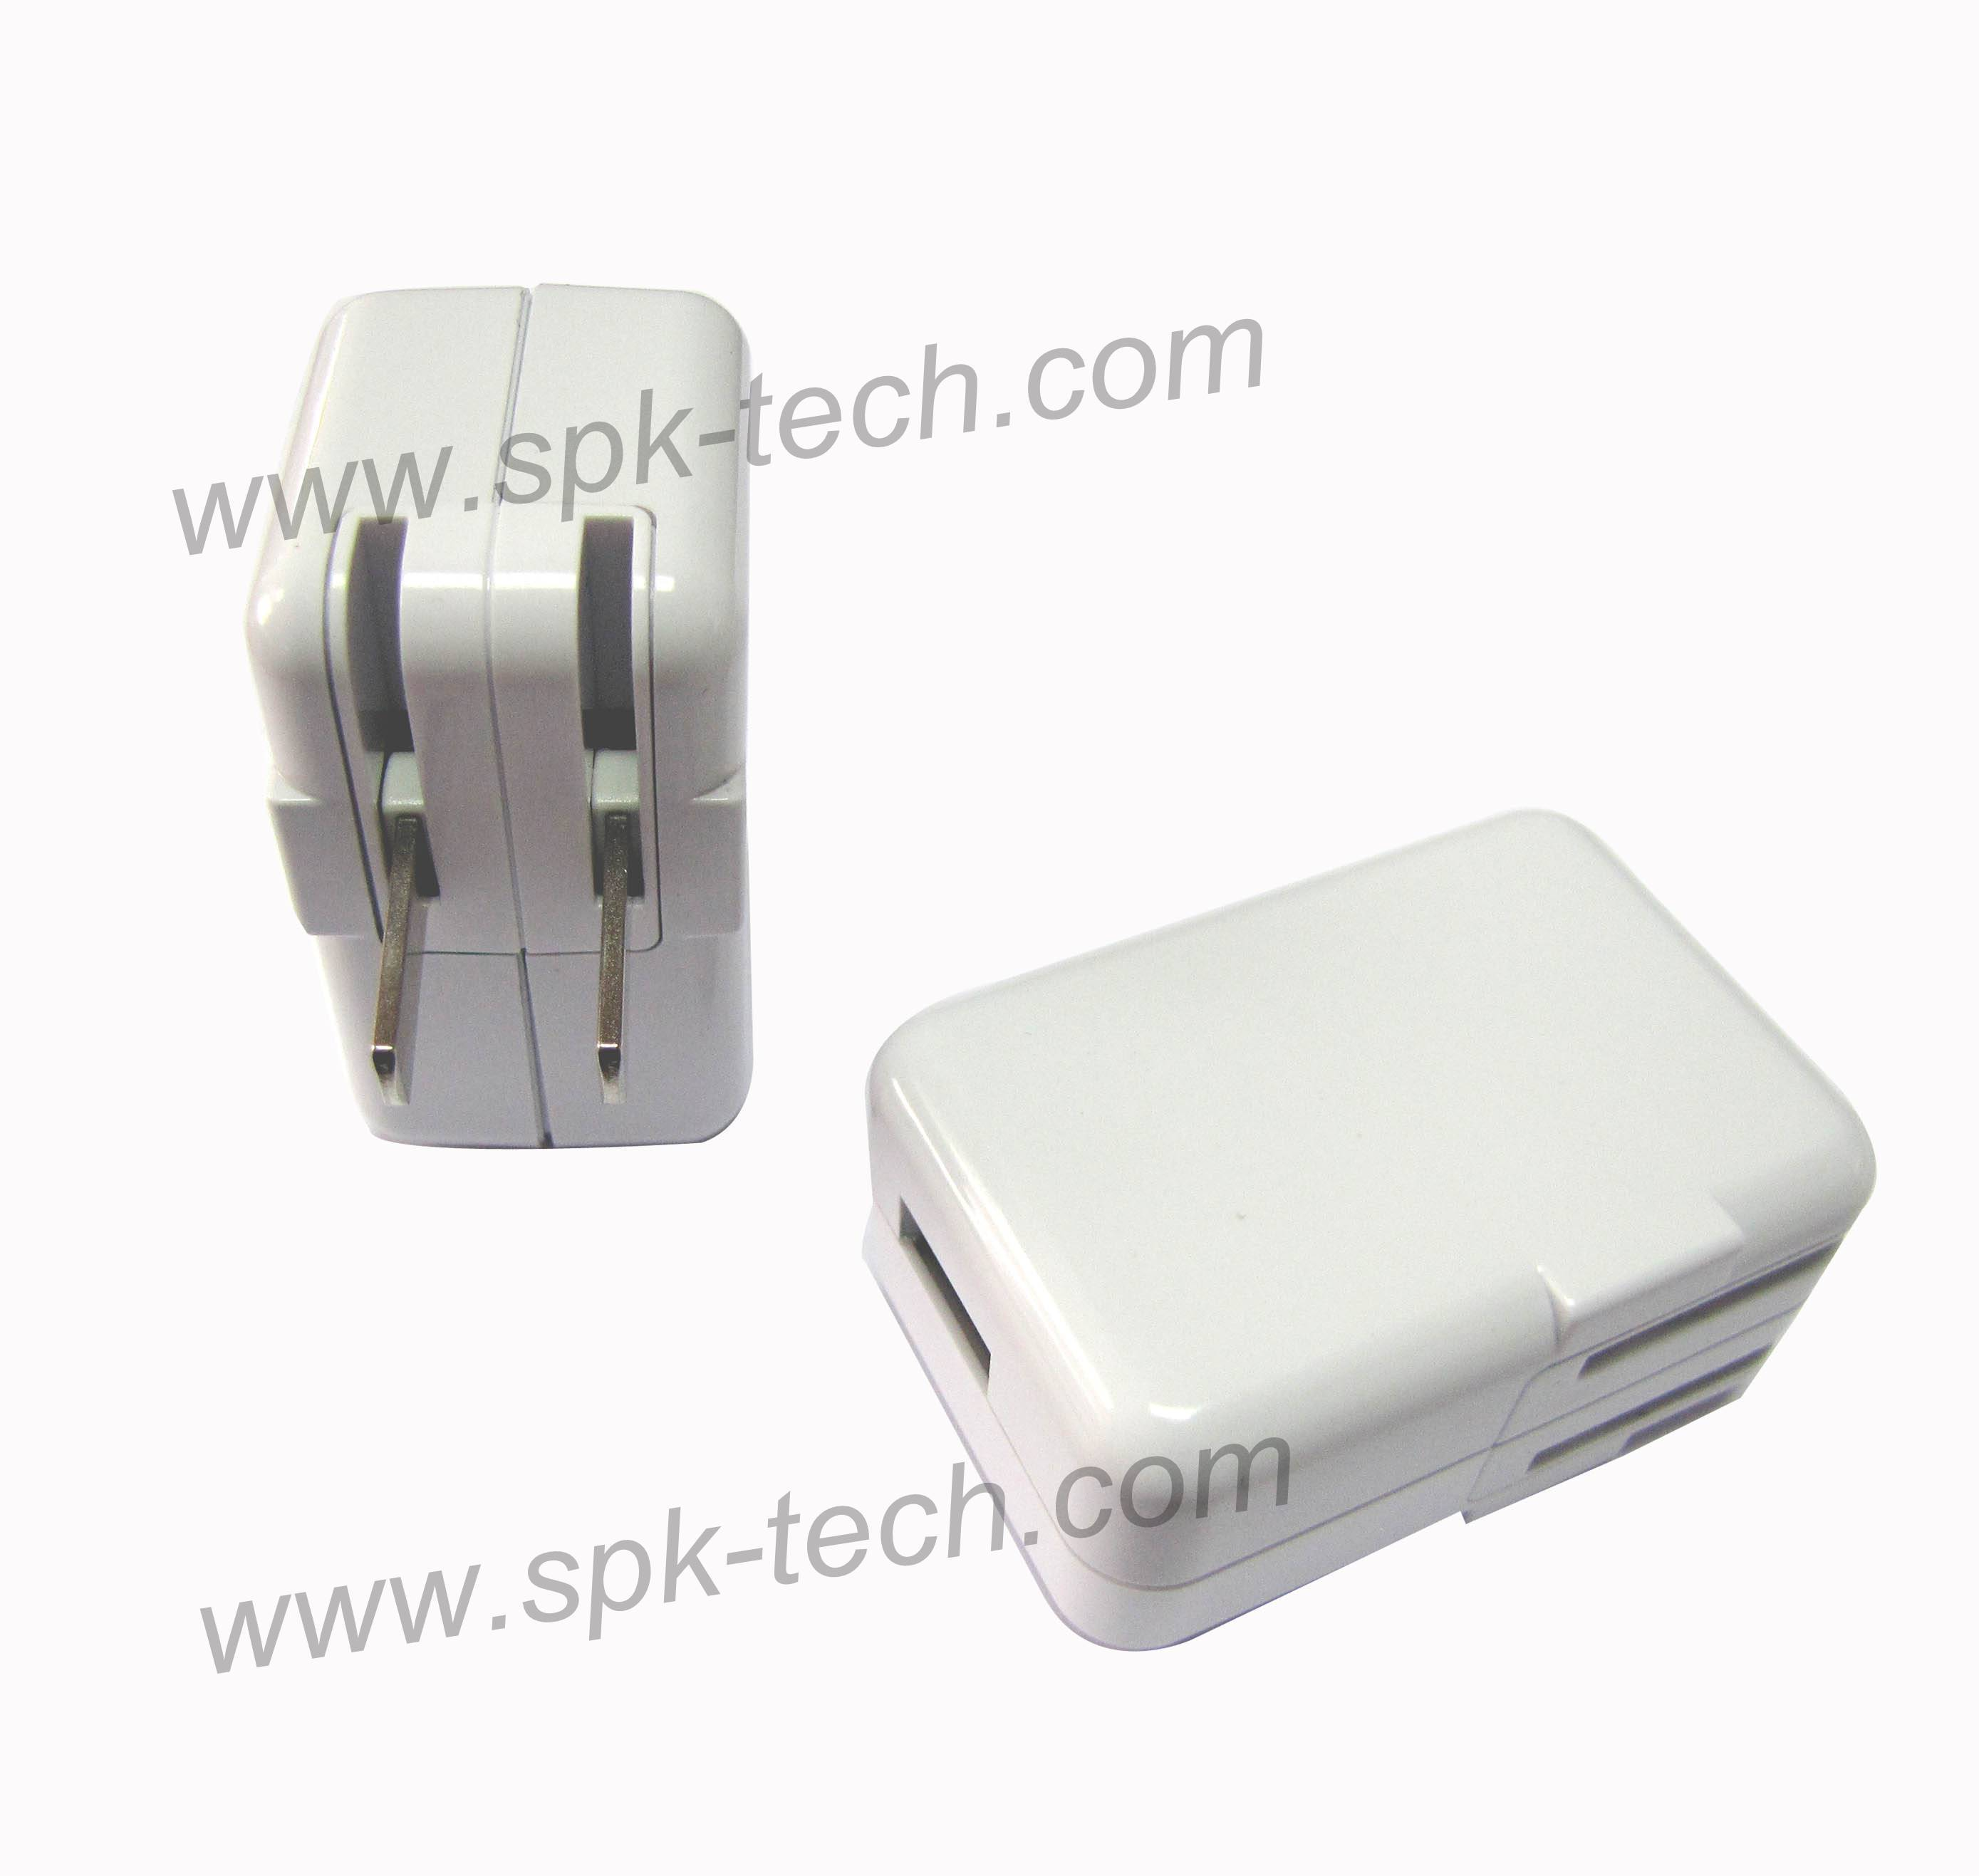 5V1A USB Power Adapter with foldable plug